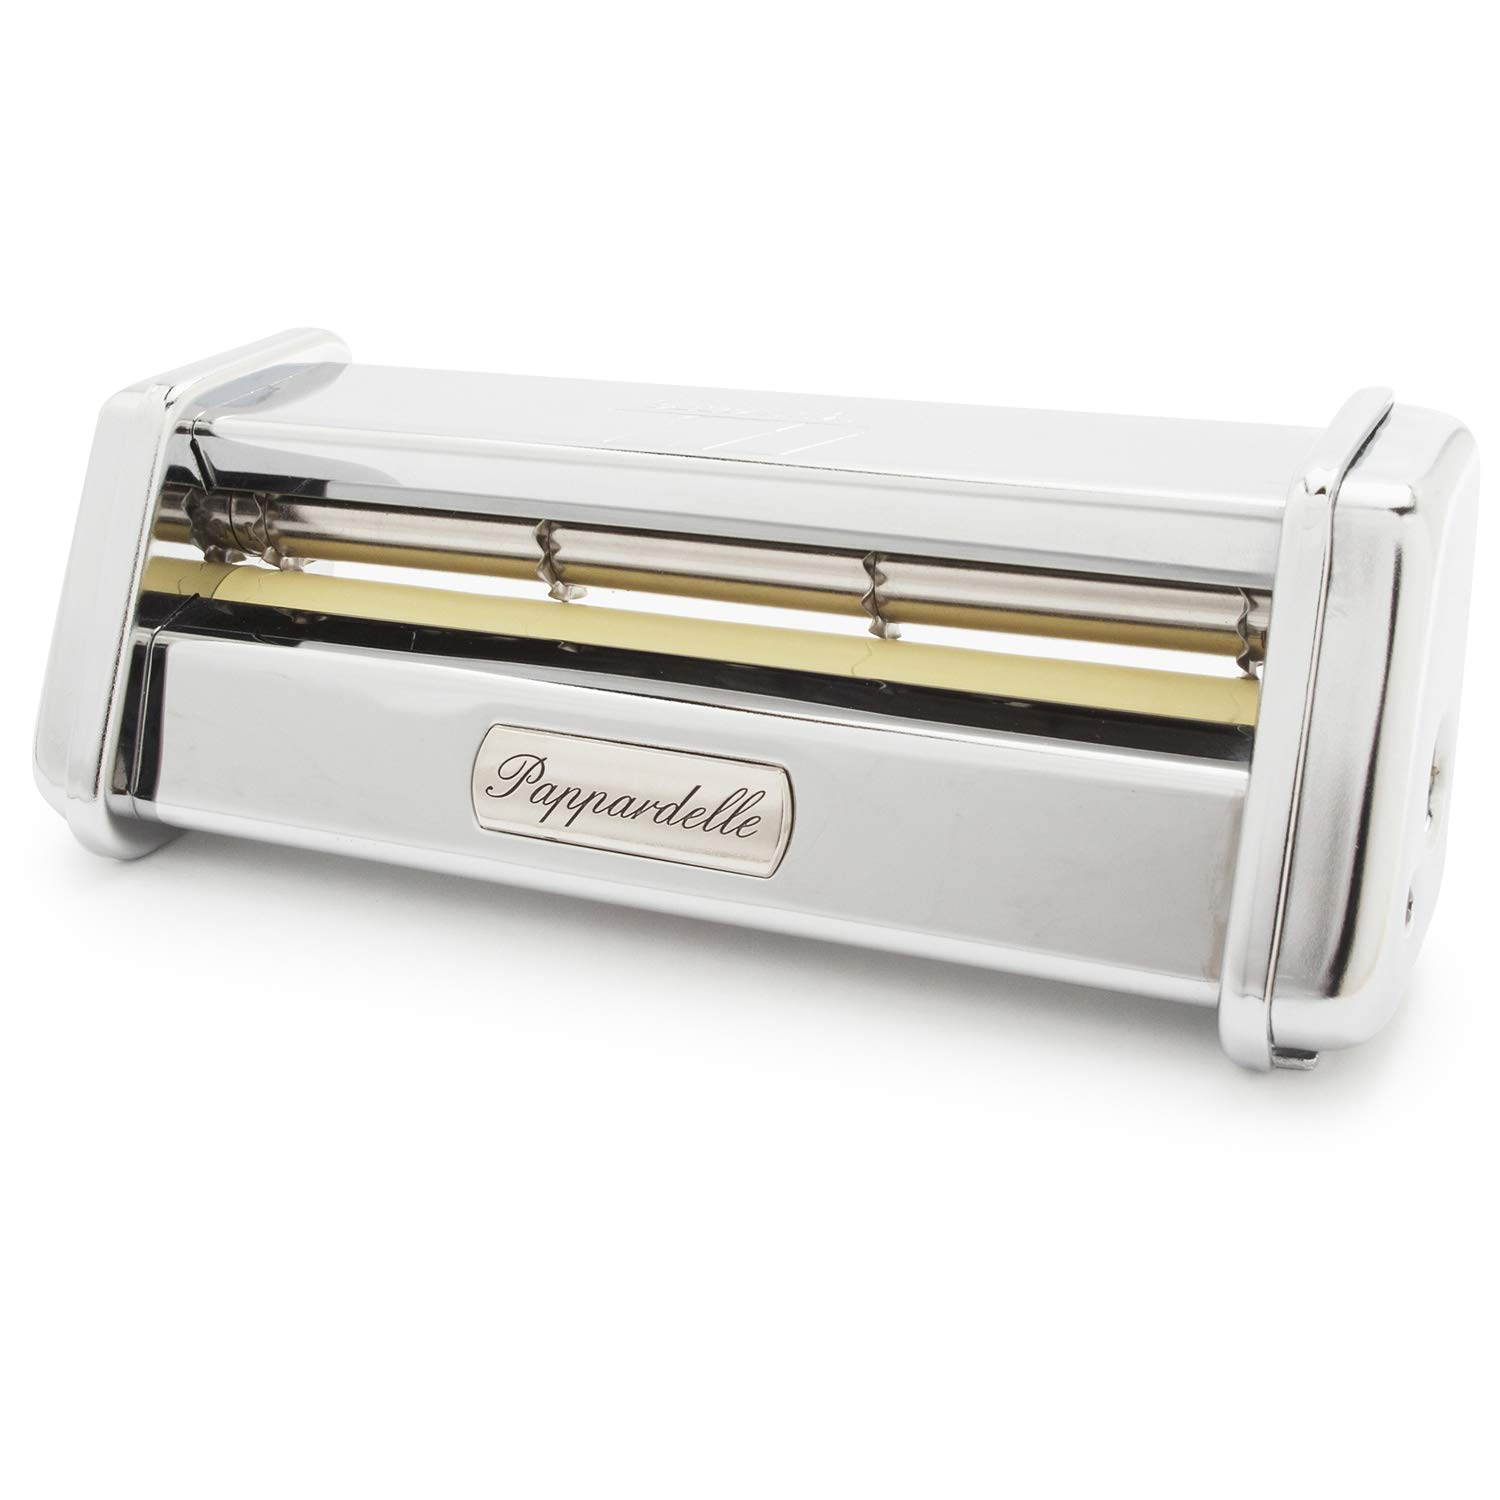 Atlas Marcato Pasta Machine Pappardelle Attachment 022901 by Atlas